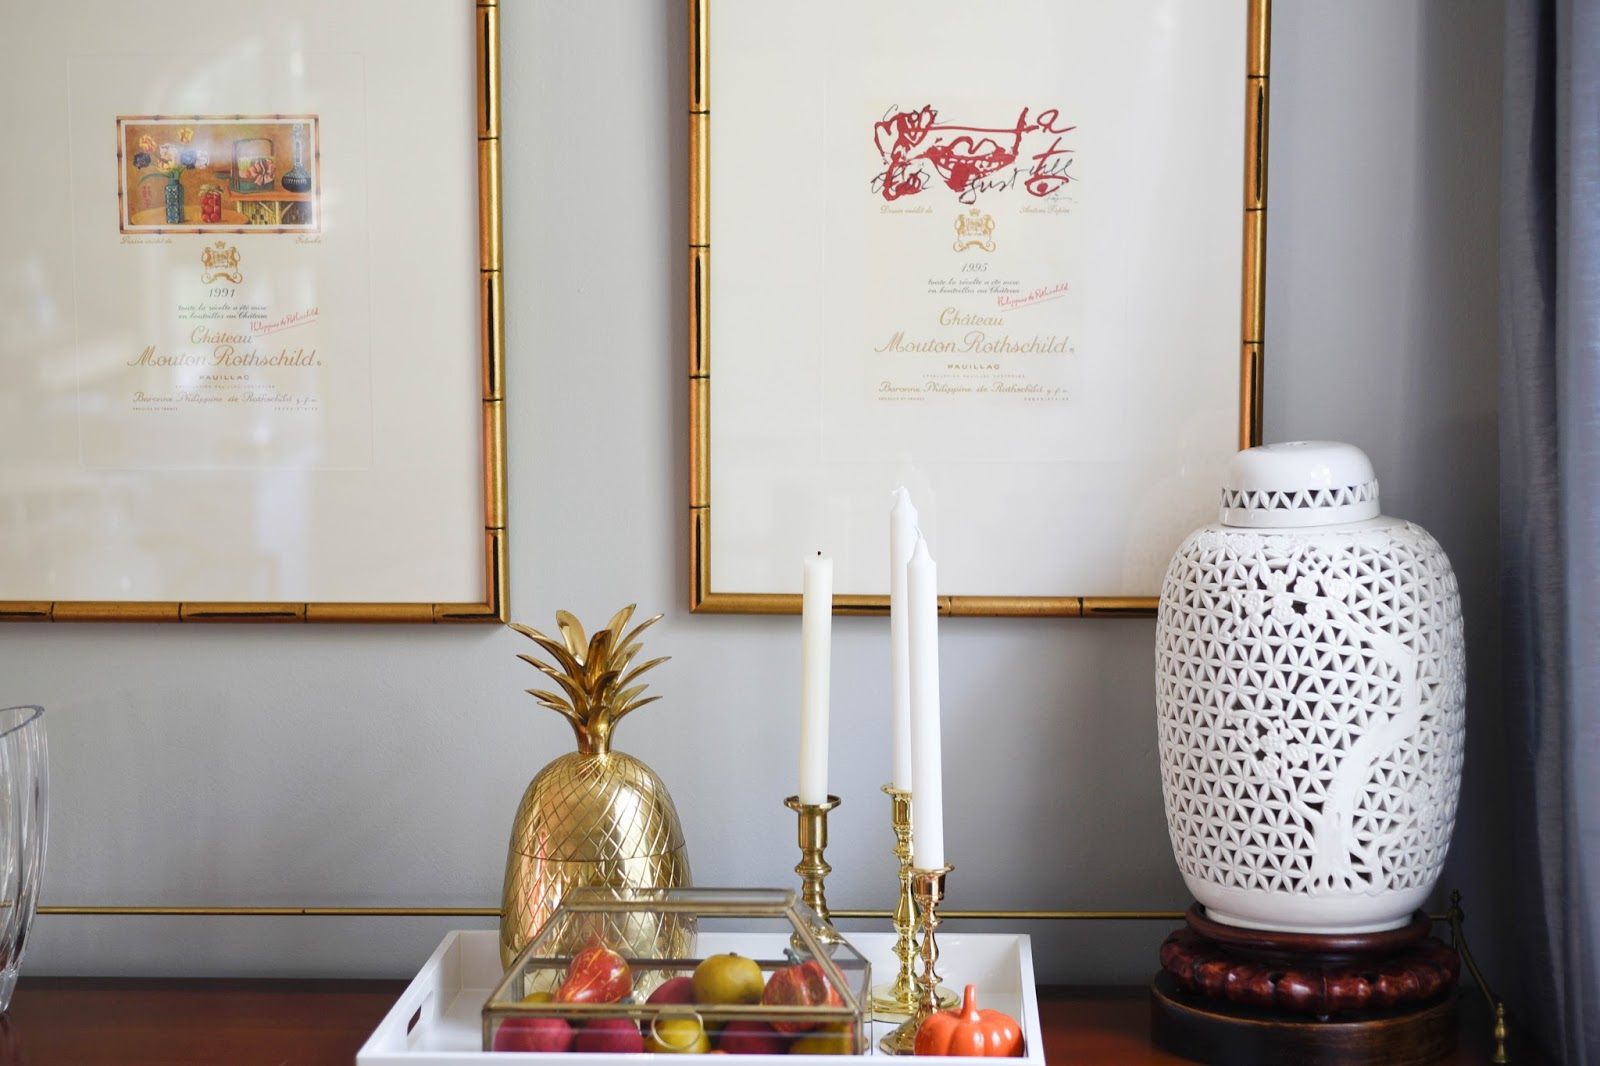 Decorating your barcart for Fall Dining Room Fall decorations www.homewithkeki.com #falldecor #diningrooms #fall